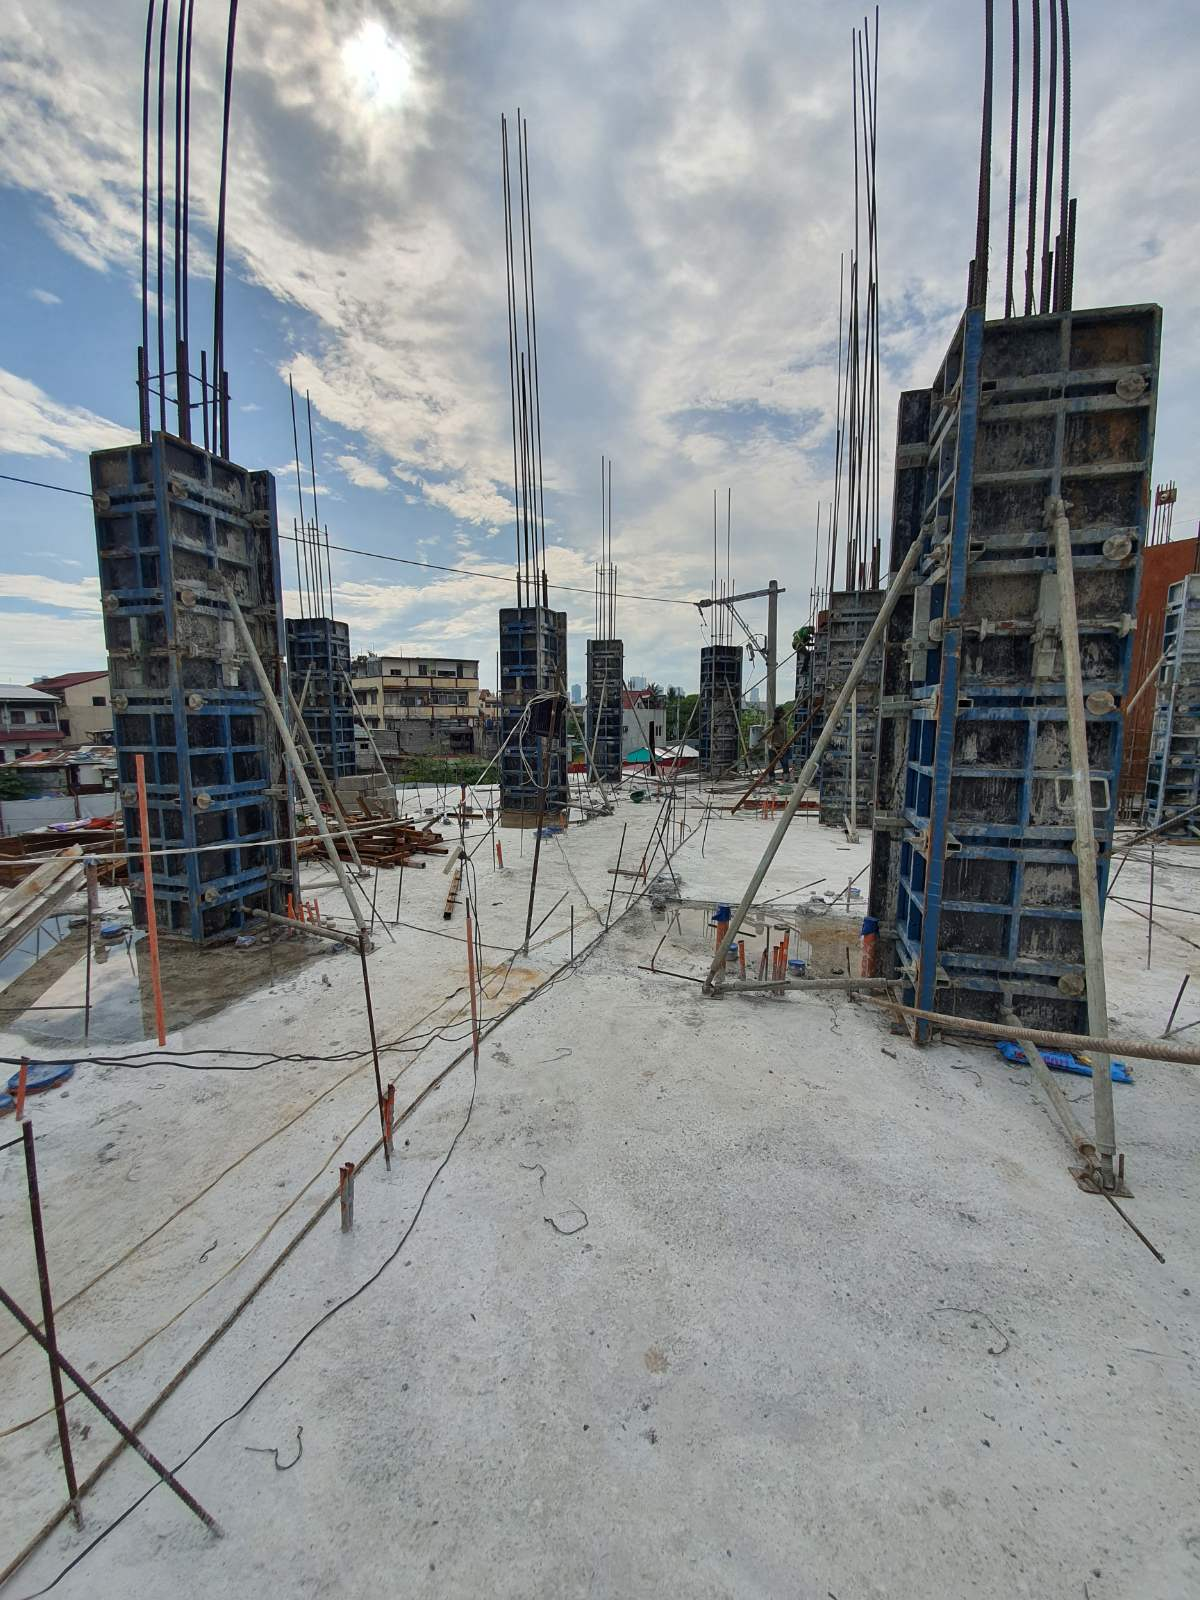 Project Description GPJ Building Location: Makati City Product / Equipment Used: B-form Adjustable Column System